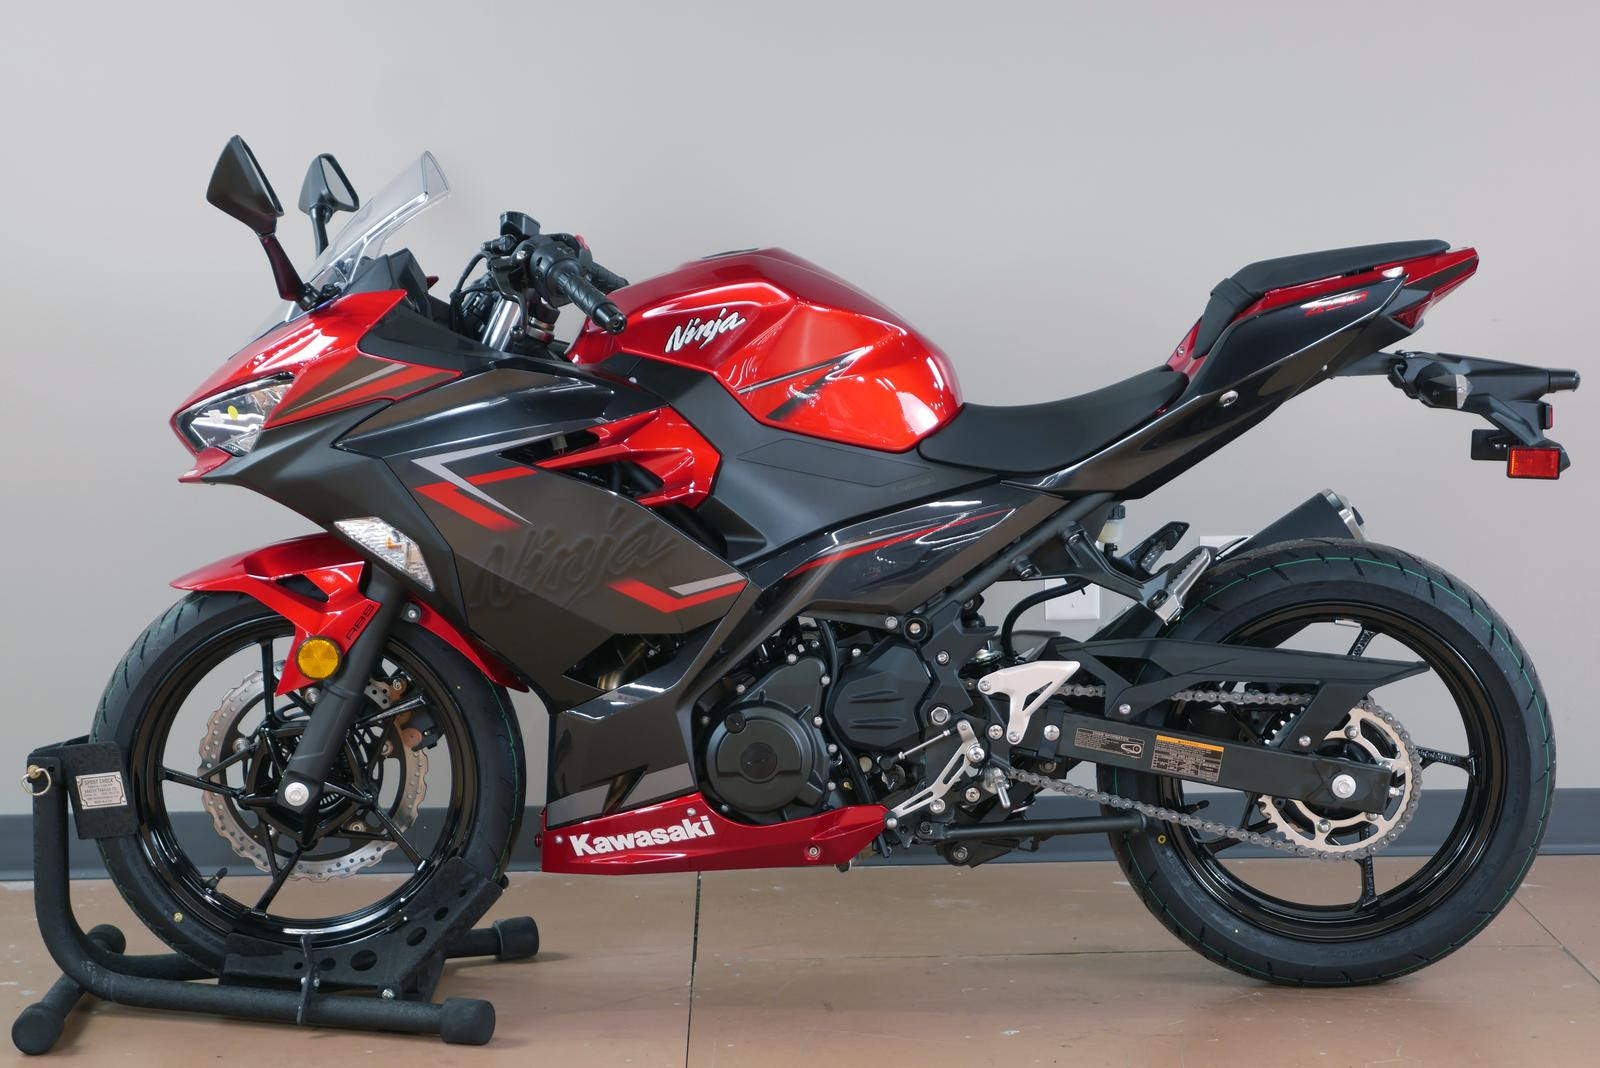 2019 Kawasaki Ninja 400 Abs For Sale In Indianapolis In